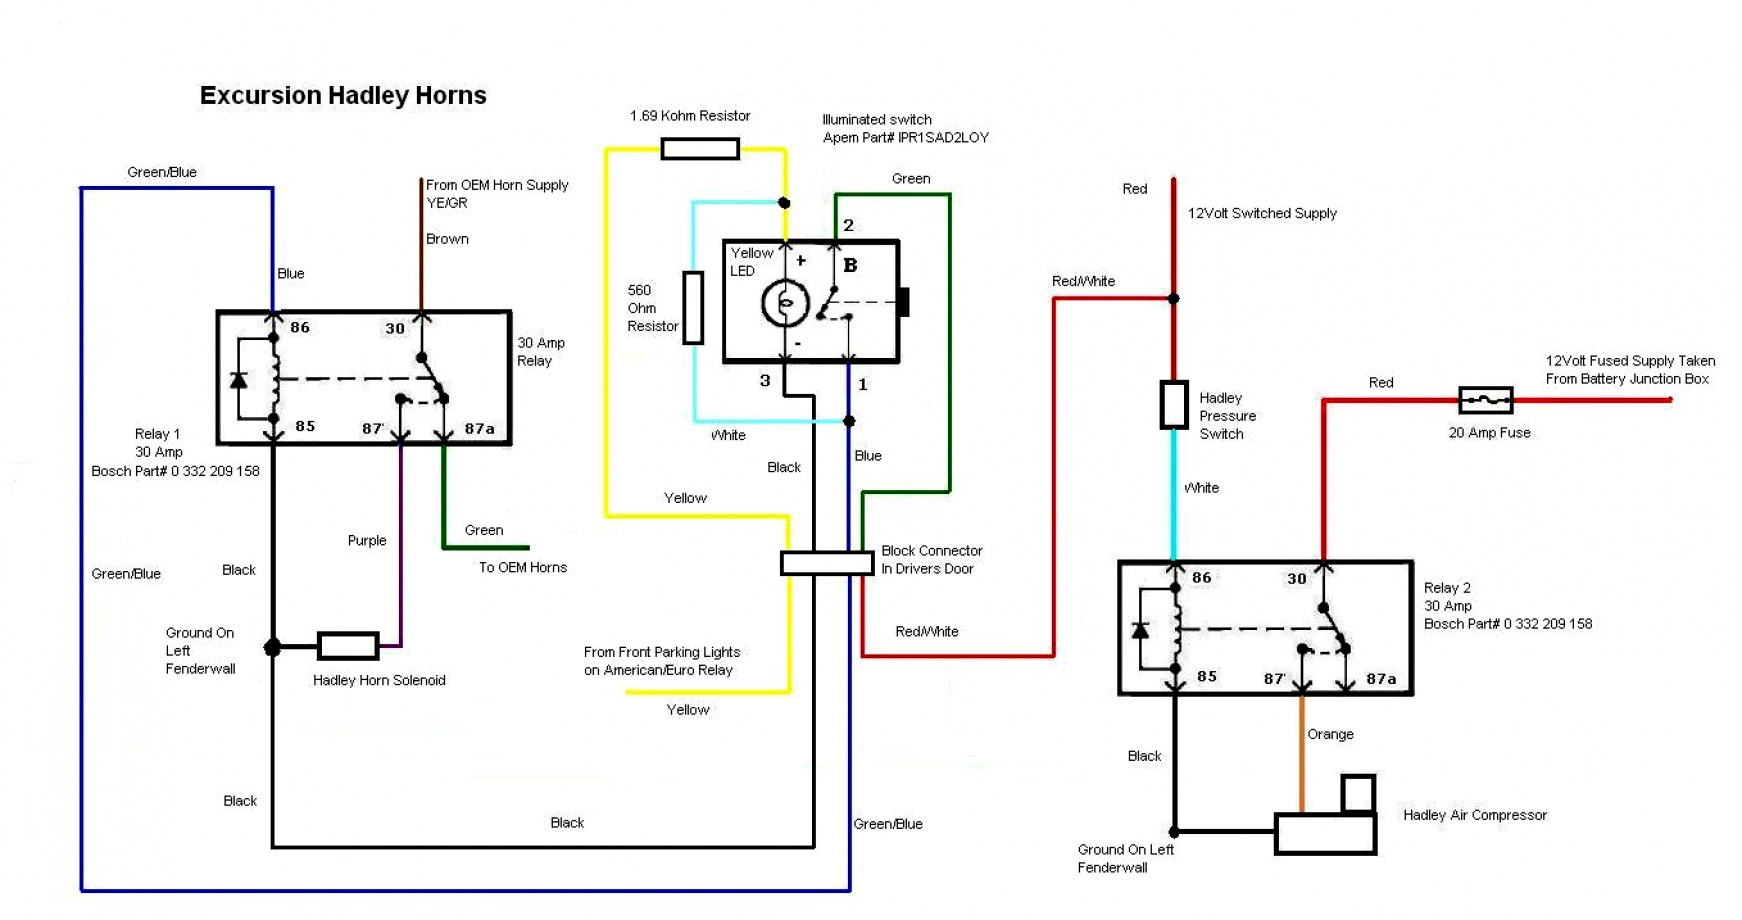 Gm Horn Wiring | Wiring Library - Horn Relay Wiring Diagram